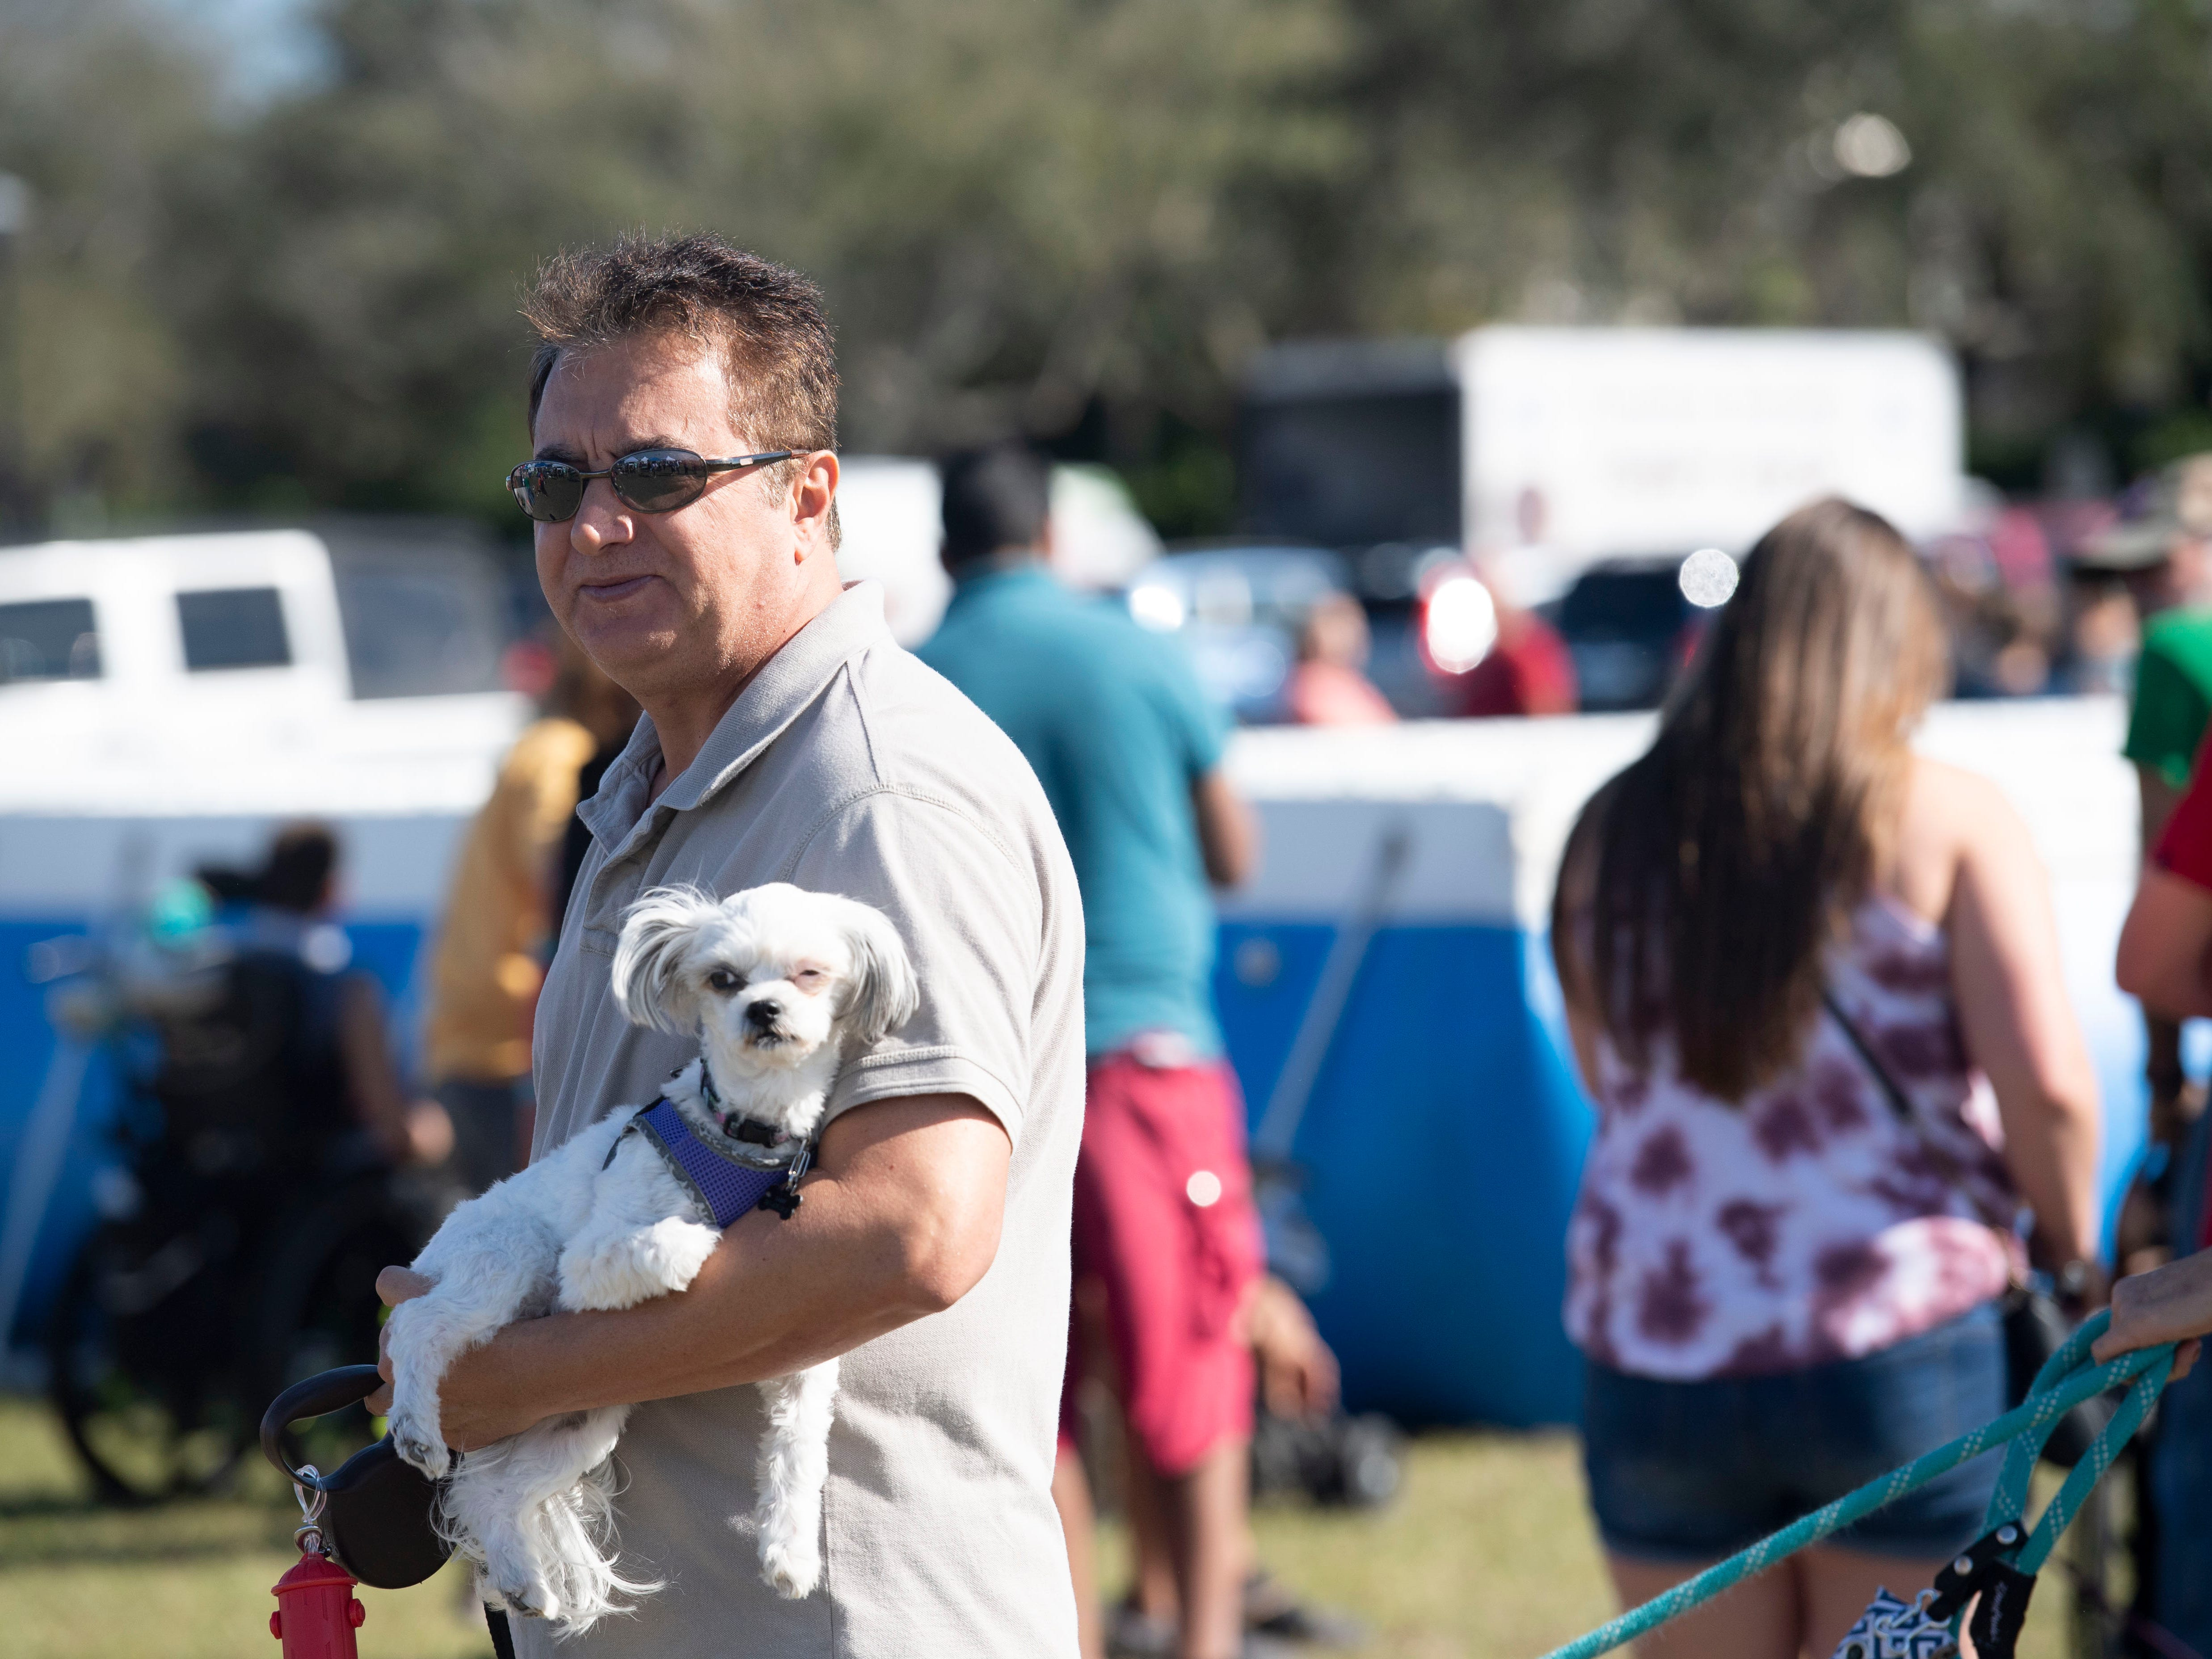 "Hundreds of people and their dogs came to the Humane Society of Vero Beach and Indian River County's sixth annual Bark in the Park that featured the Disc-Connected K9's frisbee acts, the Ultimate Dock Diving Dogs, a kids zone, lure curse, the Humane Society's Mobile Adoption Unit and vendors on Saturday, Jan. 12, 2019, at Riverside Park in Vero Beach. ""The purpose of Bark in the Park is to bring the community's pet lovers together and to celebrate the human, animal bond,"" said Kate Meghji, executive director of the Humane Society. ""Watching dogs be dogs is pretty much the most entertaining and heartwarming thing ever,"" she said."